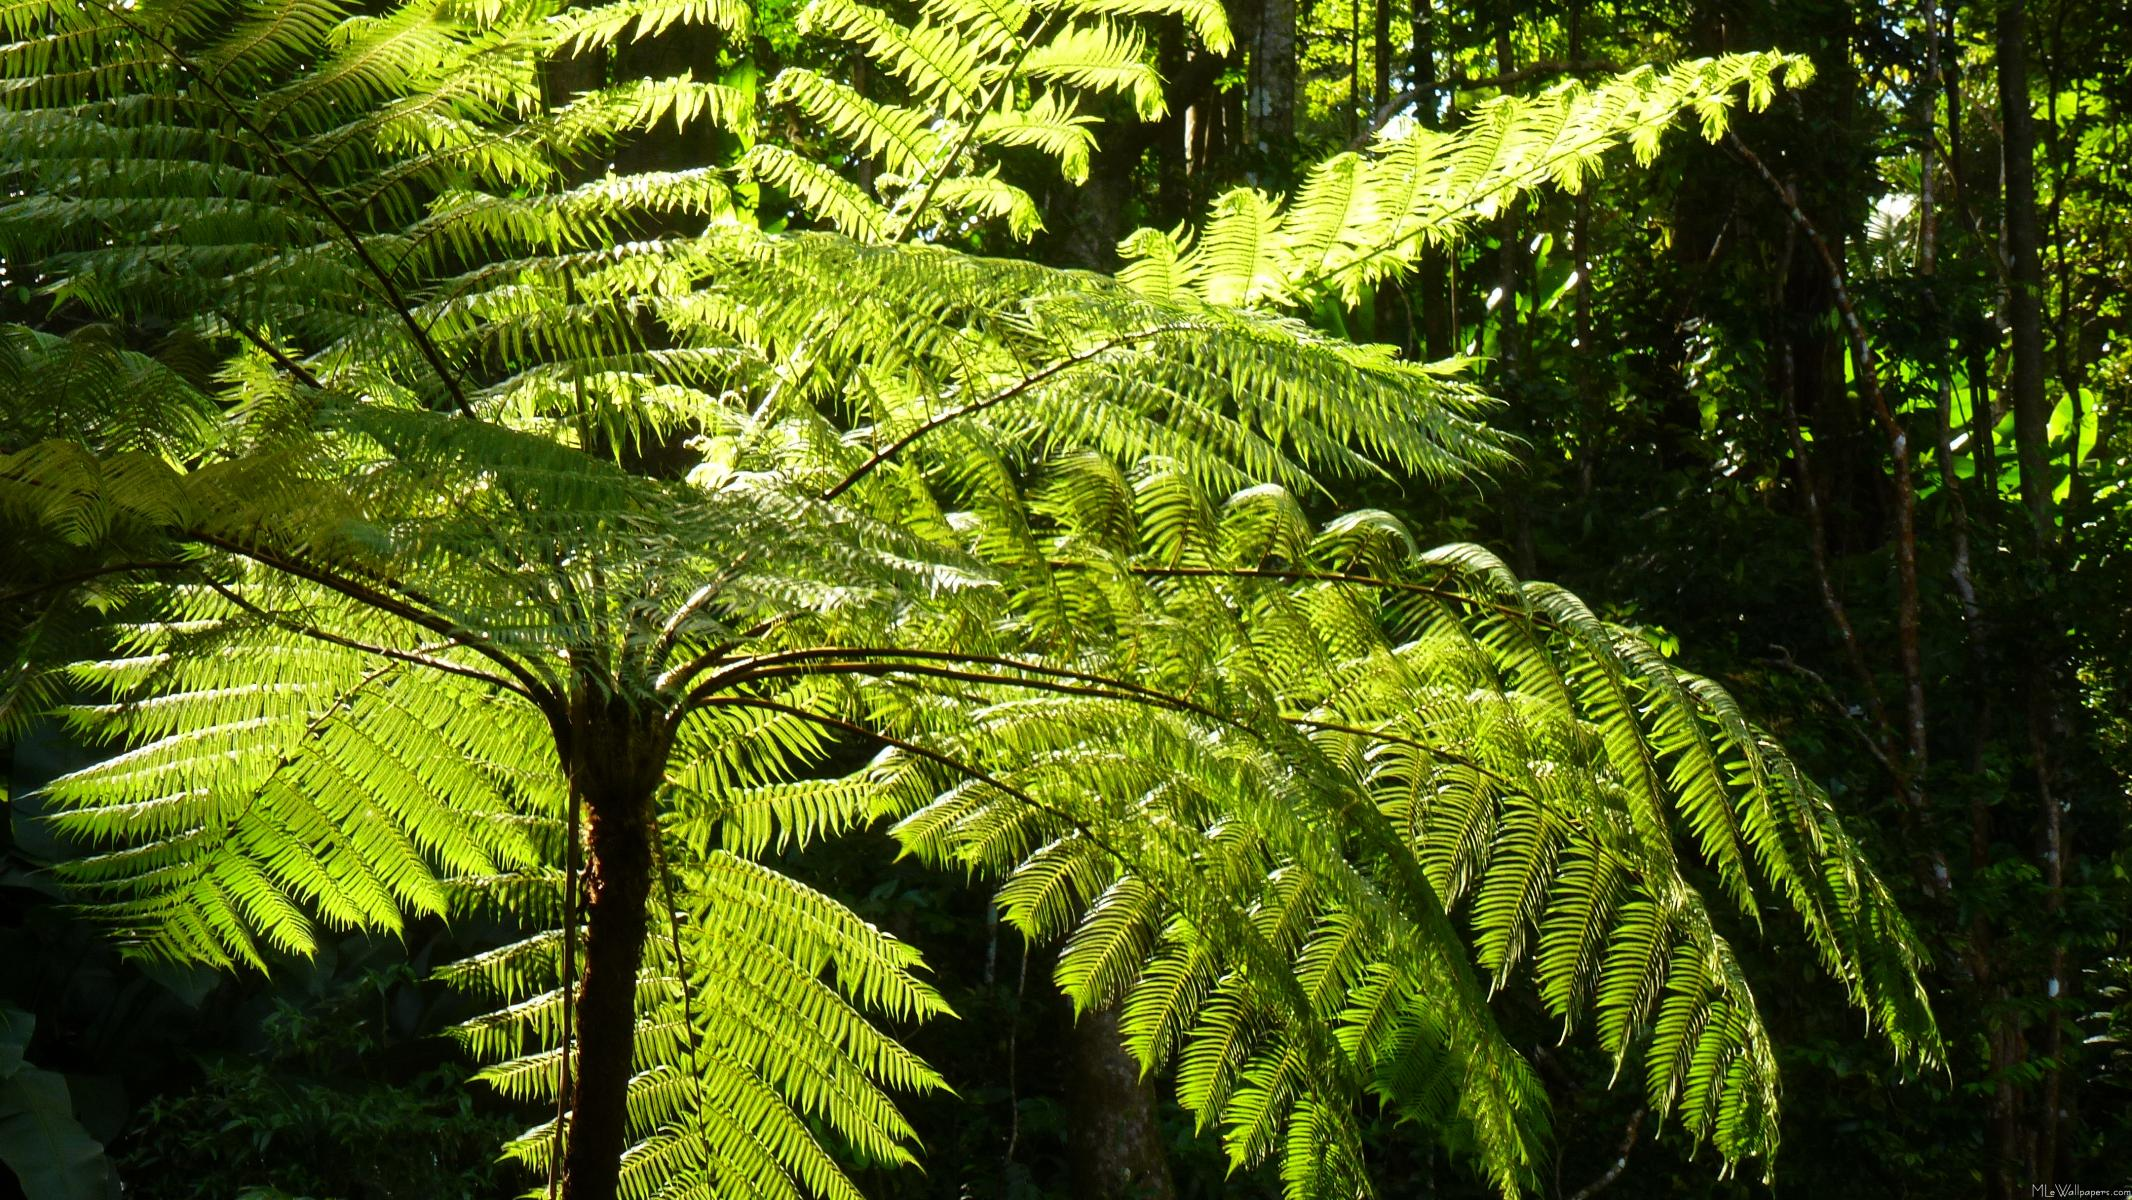 MLeWallpapers.com - Tree Fern in the Rainforest